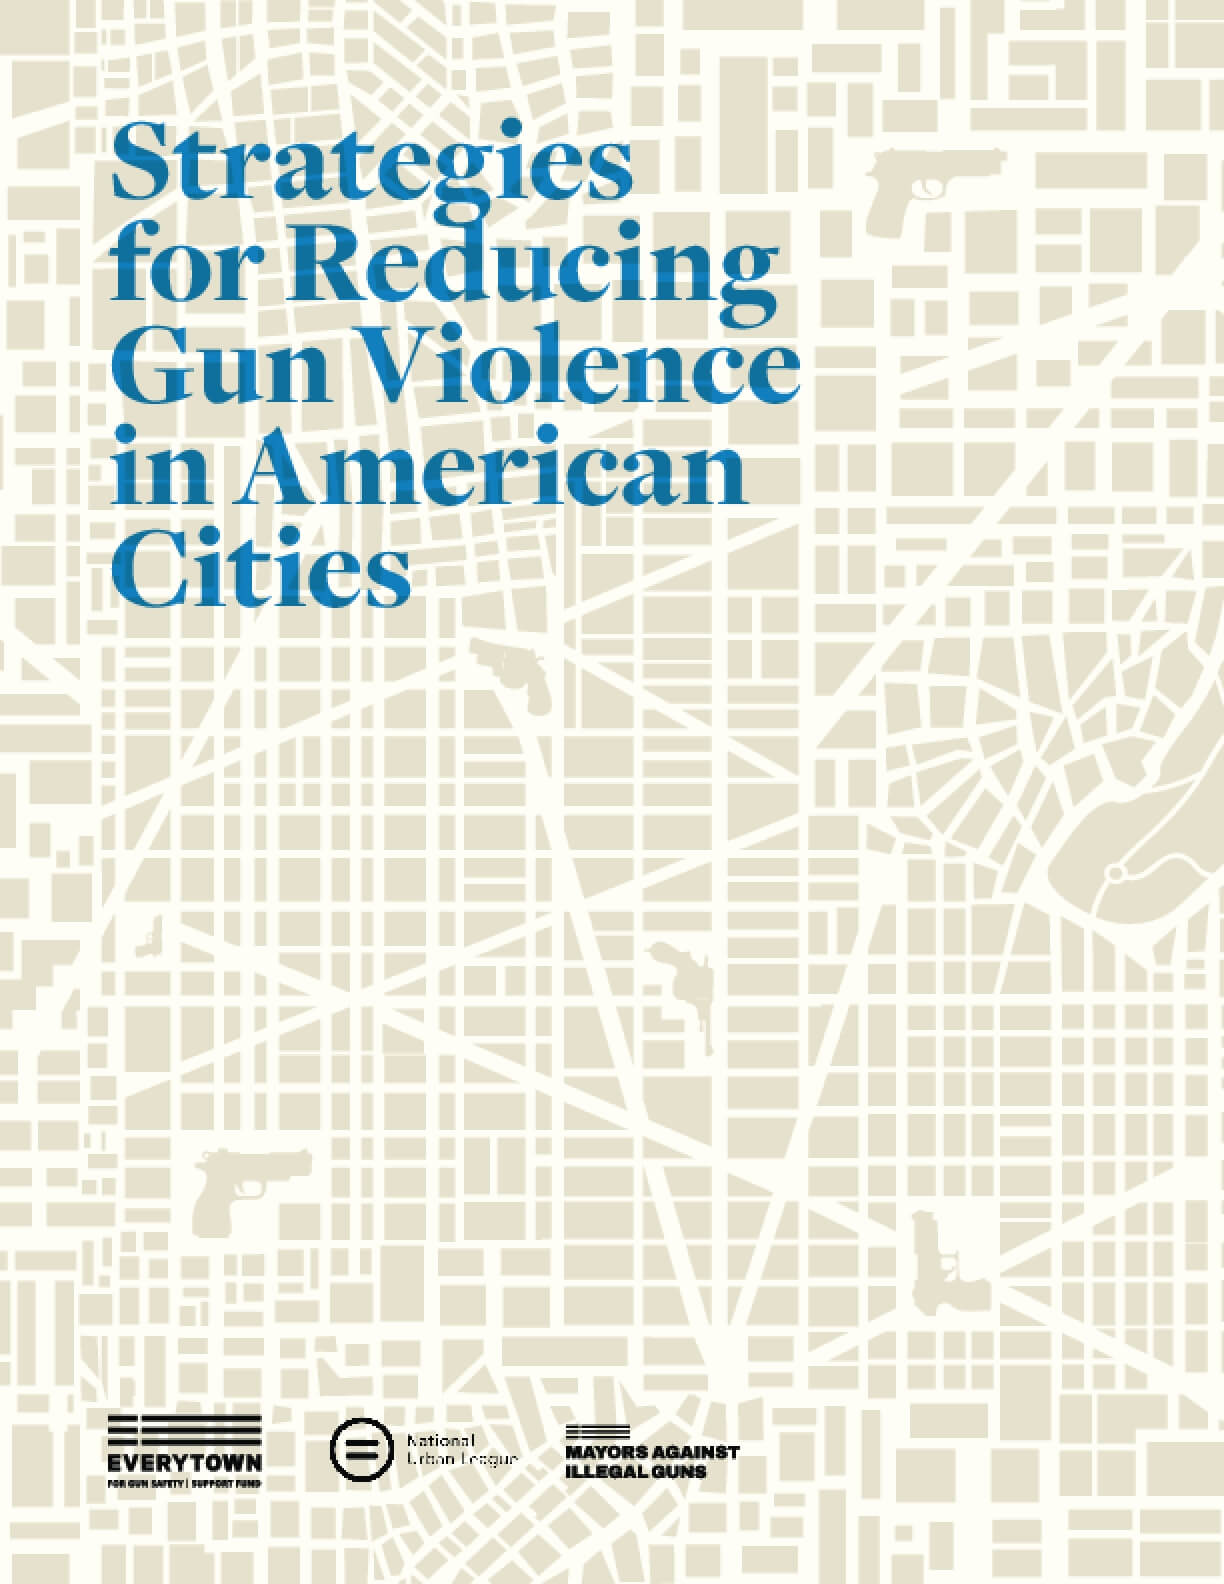 Strategies for Reducing Gun Violence in American Cities